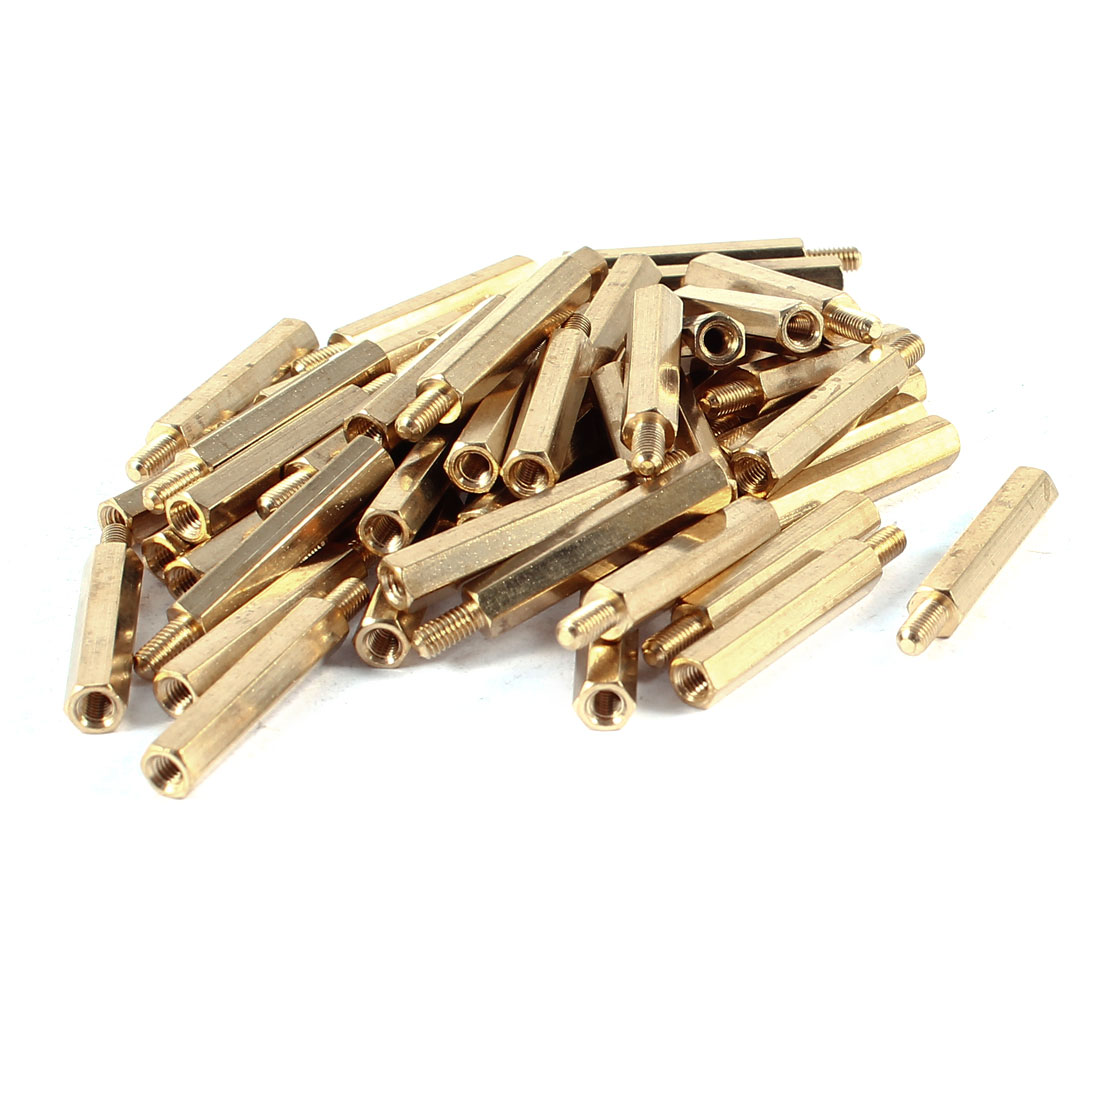 50 Pcs Brass Hex Standoff Spacer M3x25mm Female to M3x6mm Male M3 25+6mm